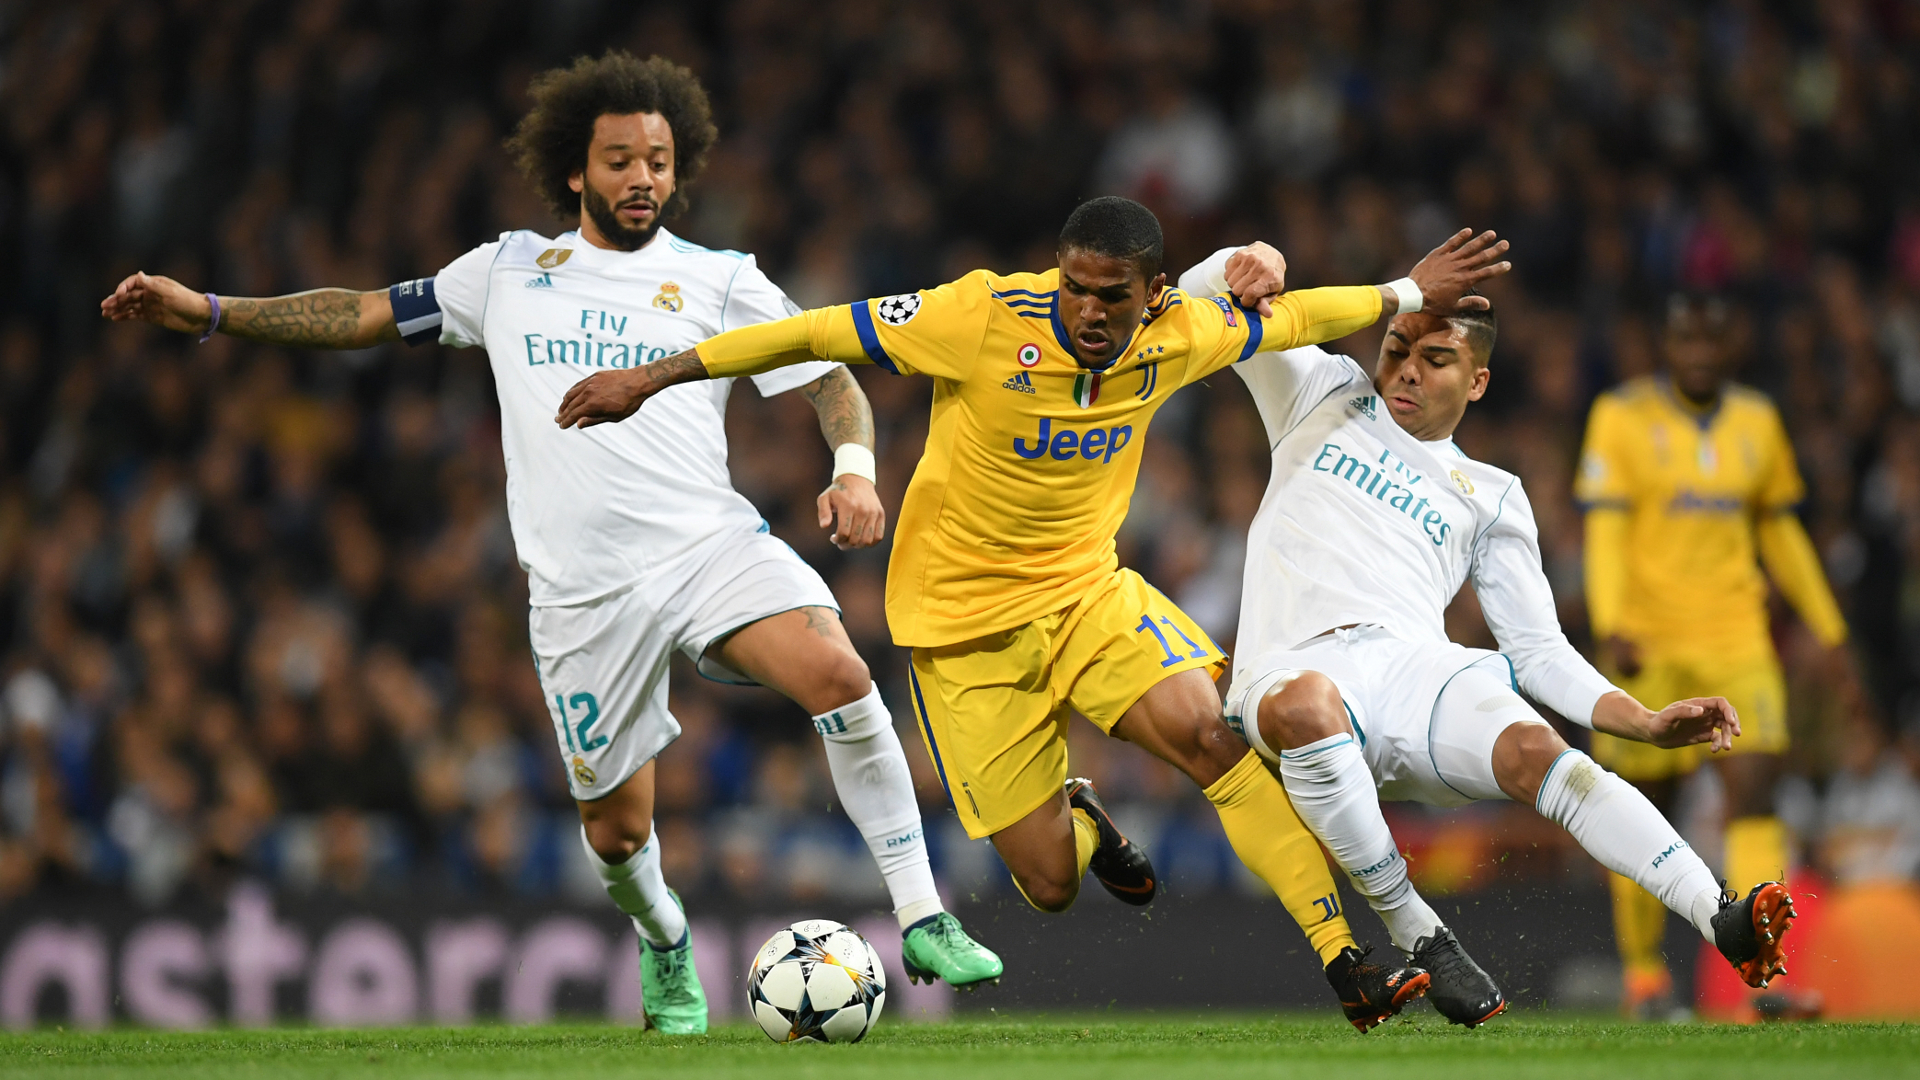 Douglas Costa Juventus Real Madrid